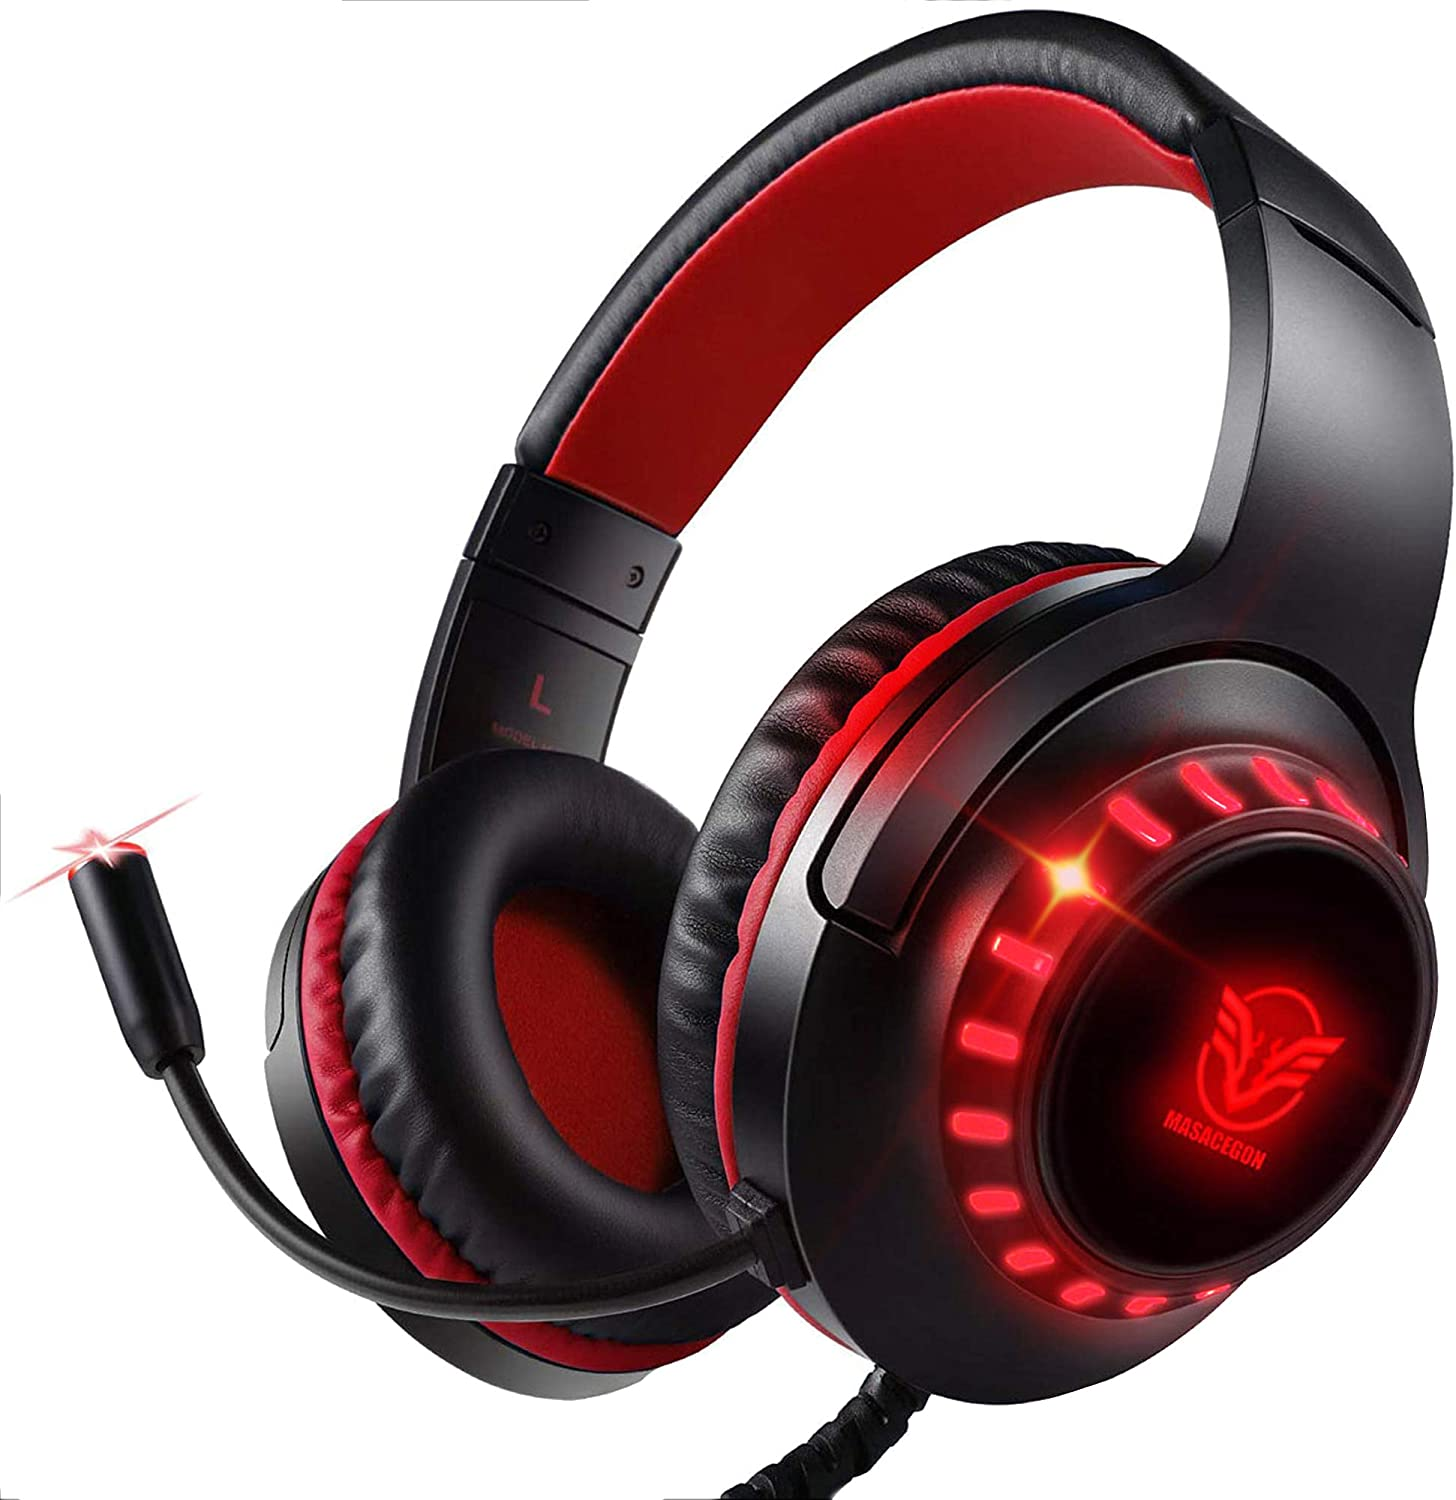 Pacrate Gaming Headset for PS4 Xbox One PC with Noise Cancelling